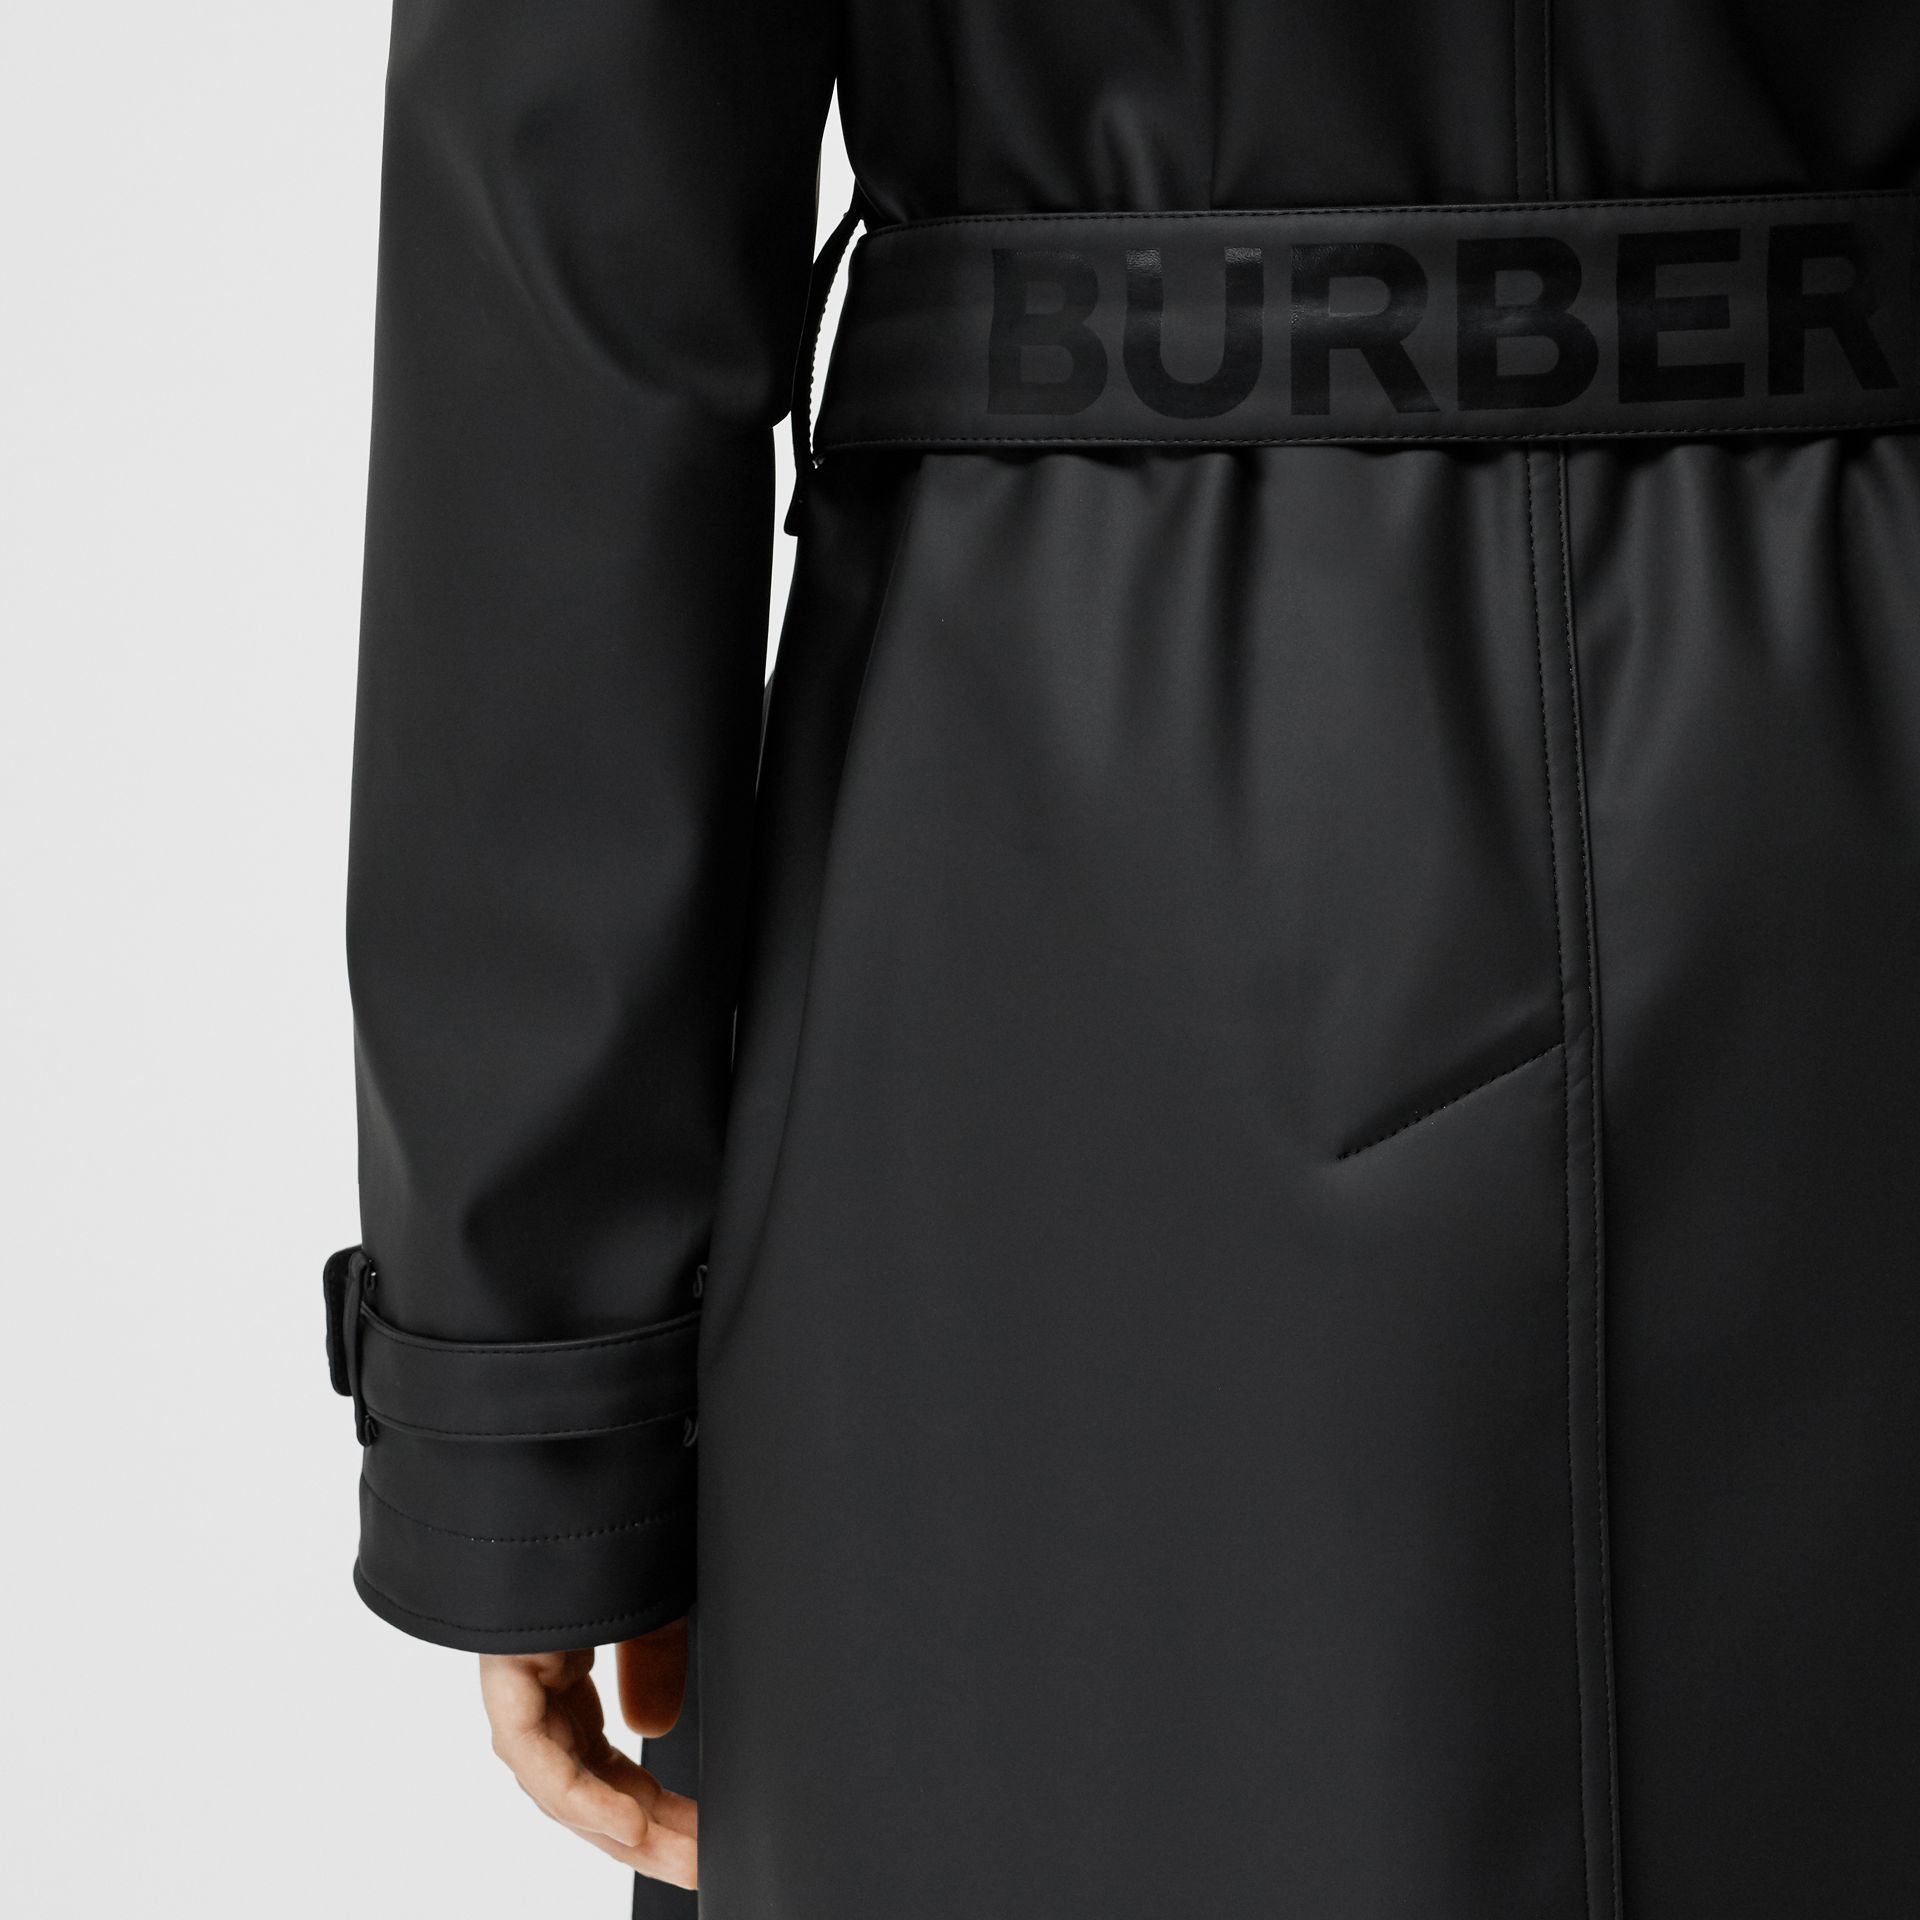 Logo Detail Showerproof Trench Coat in Black/white - Women | Burberry United Kingdom - gallery image 6